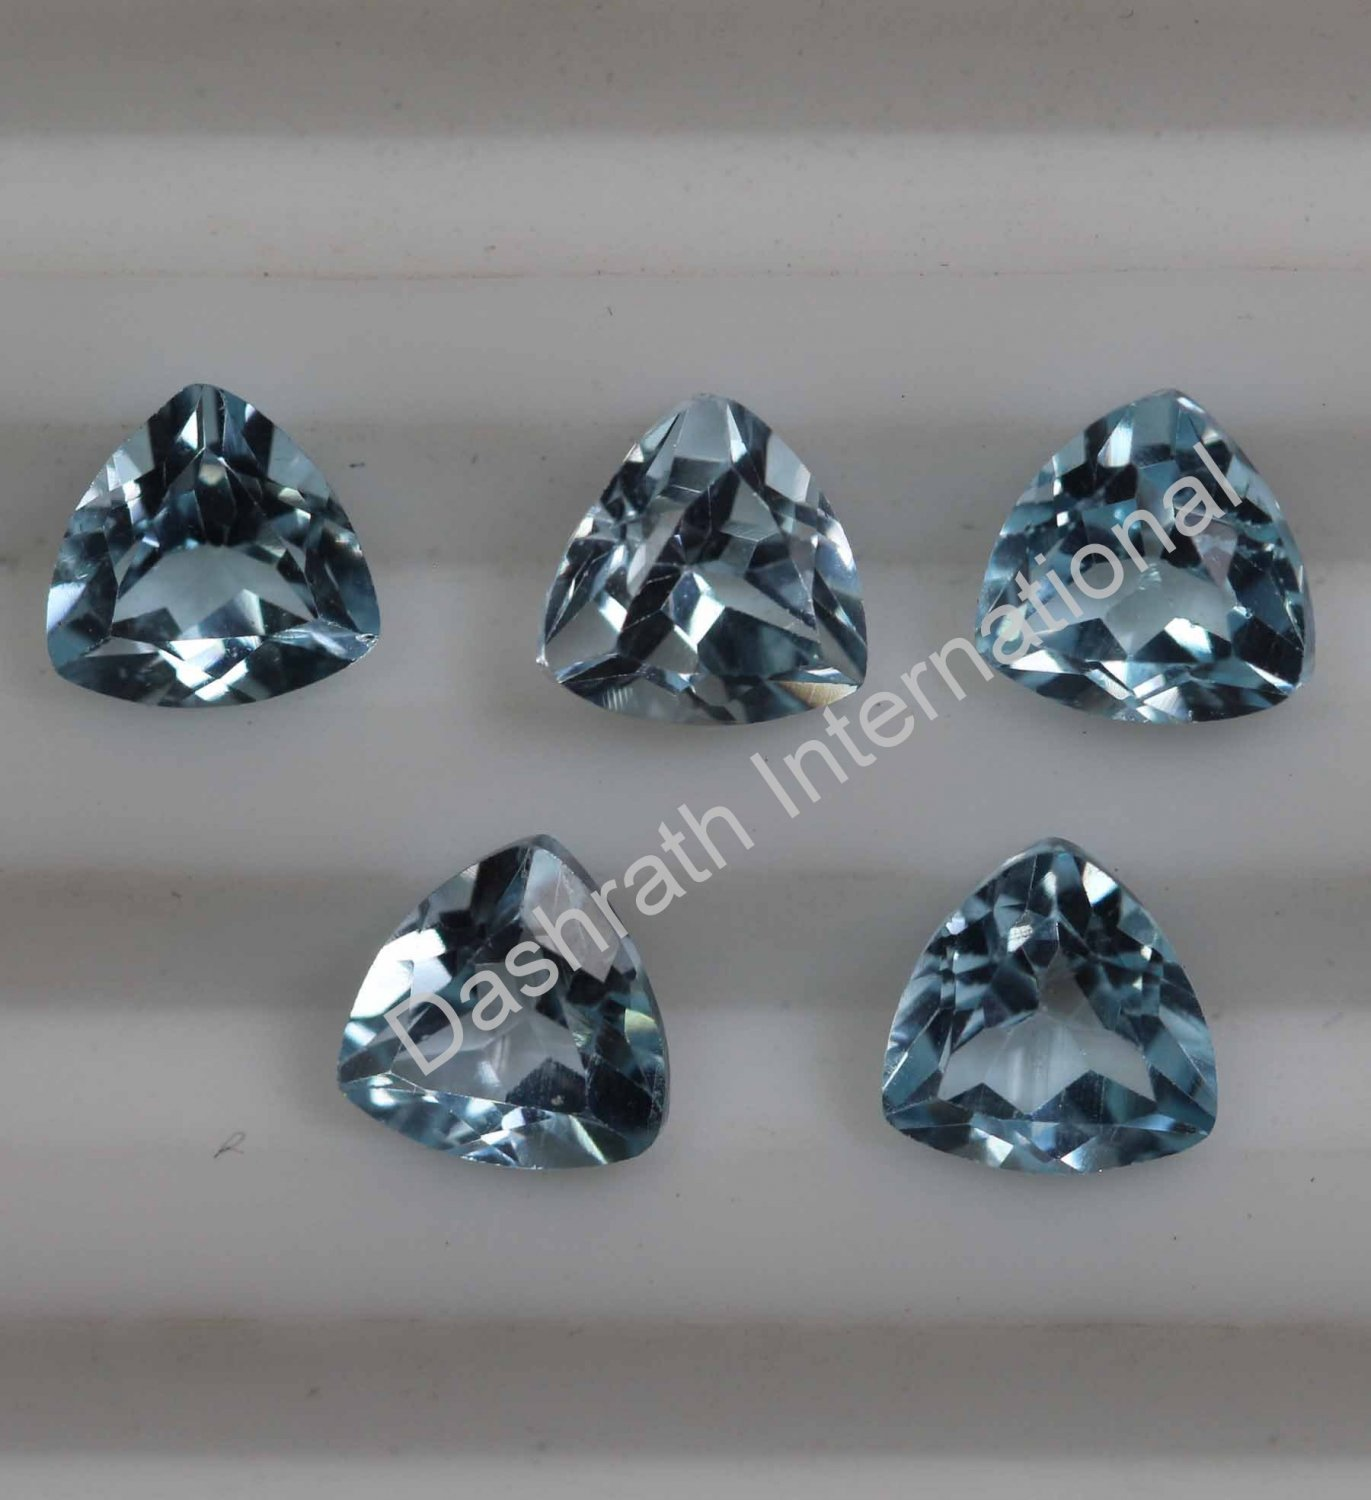 3mm Natural Sky Blue Topaz Faceted Cut Trillion 25 Pieces LotTop Quality Loose Gemstone